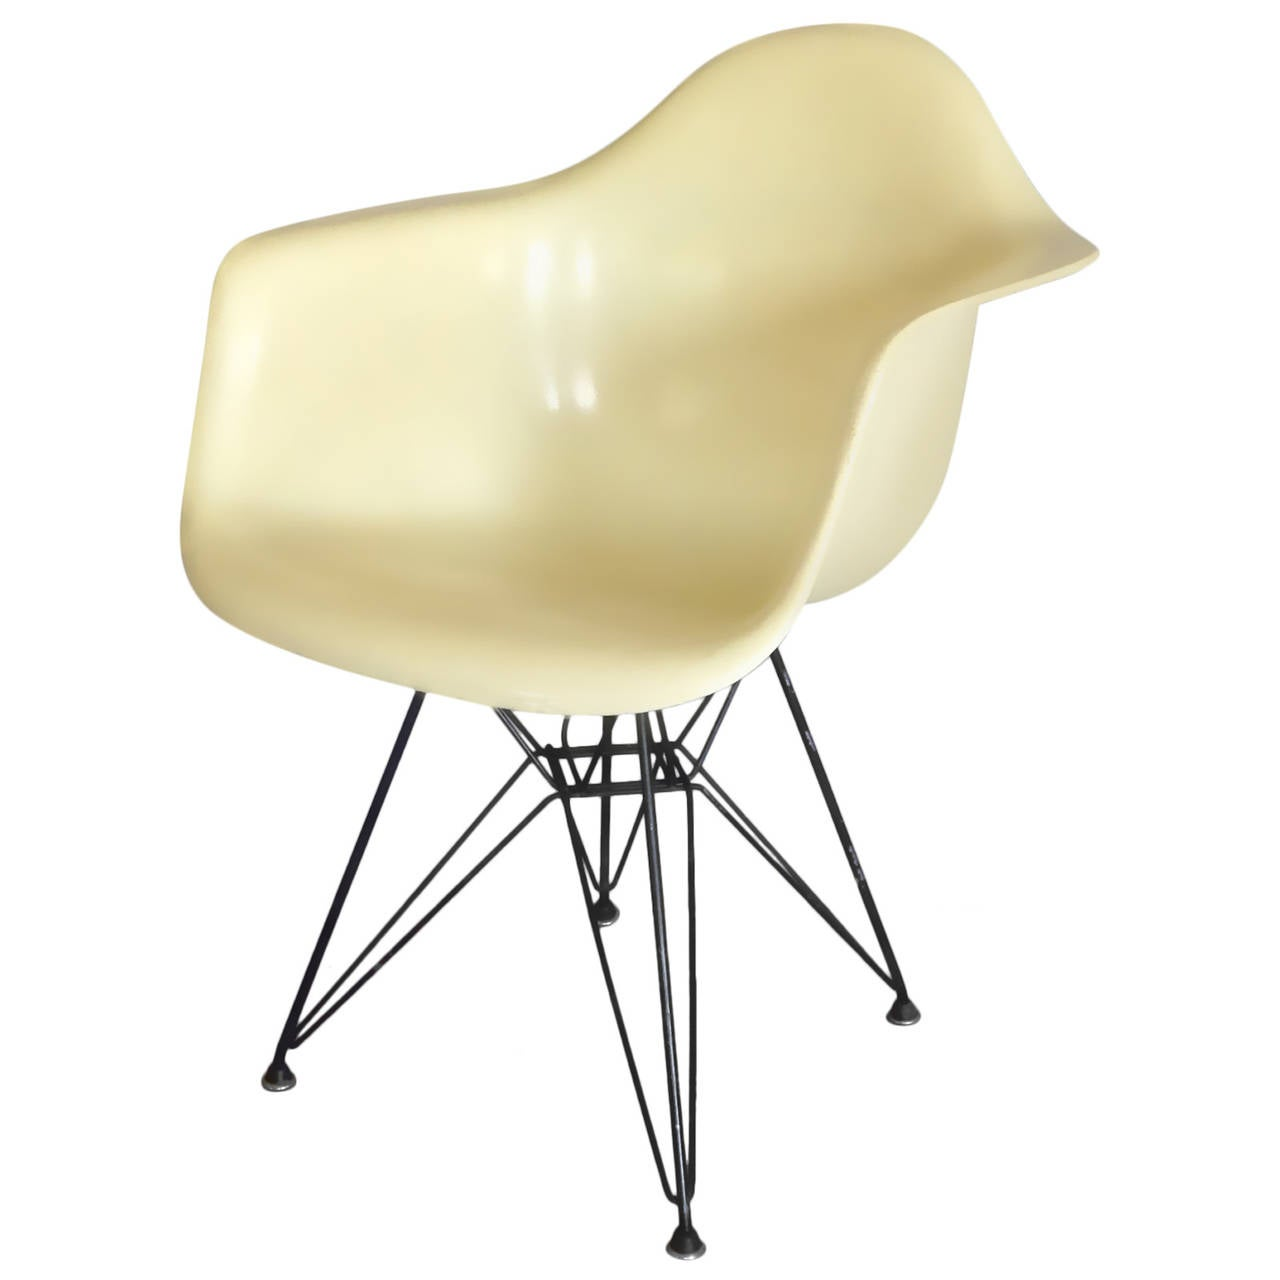 Eames Chair Dar Early Large Biscuit Eames Zenith Ivory Dar Fiberglass Chair On Eiffel Tower Base